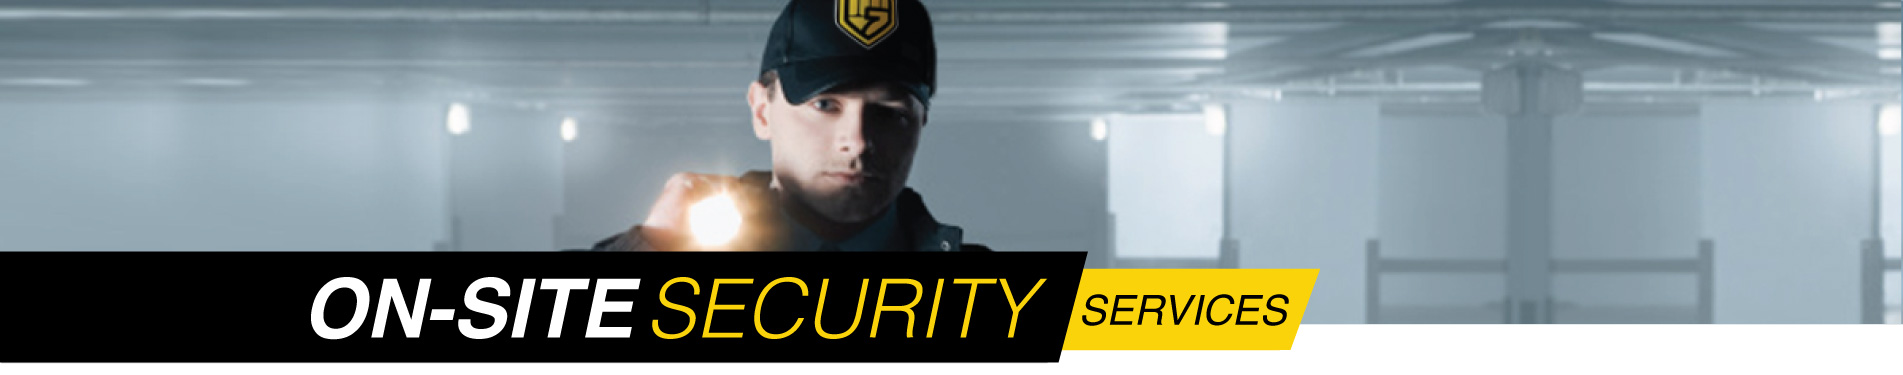 Houston area onsite security services